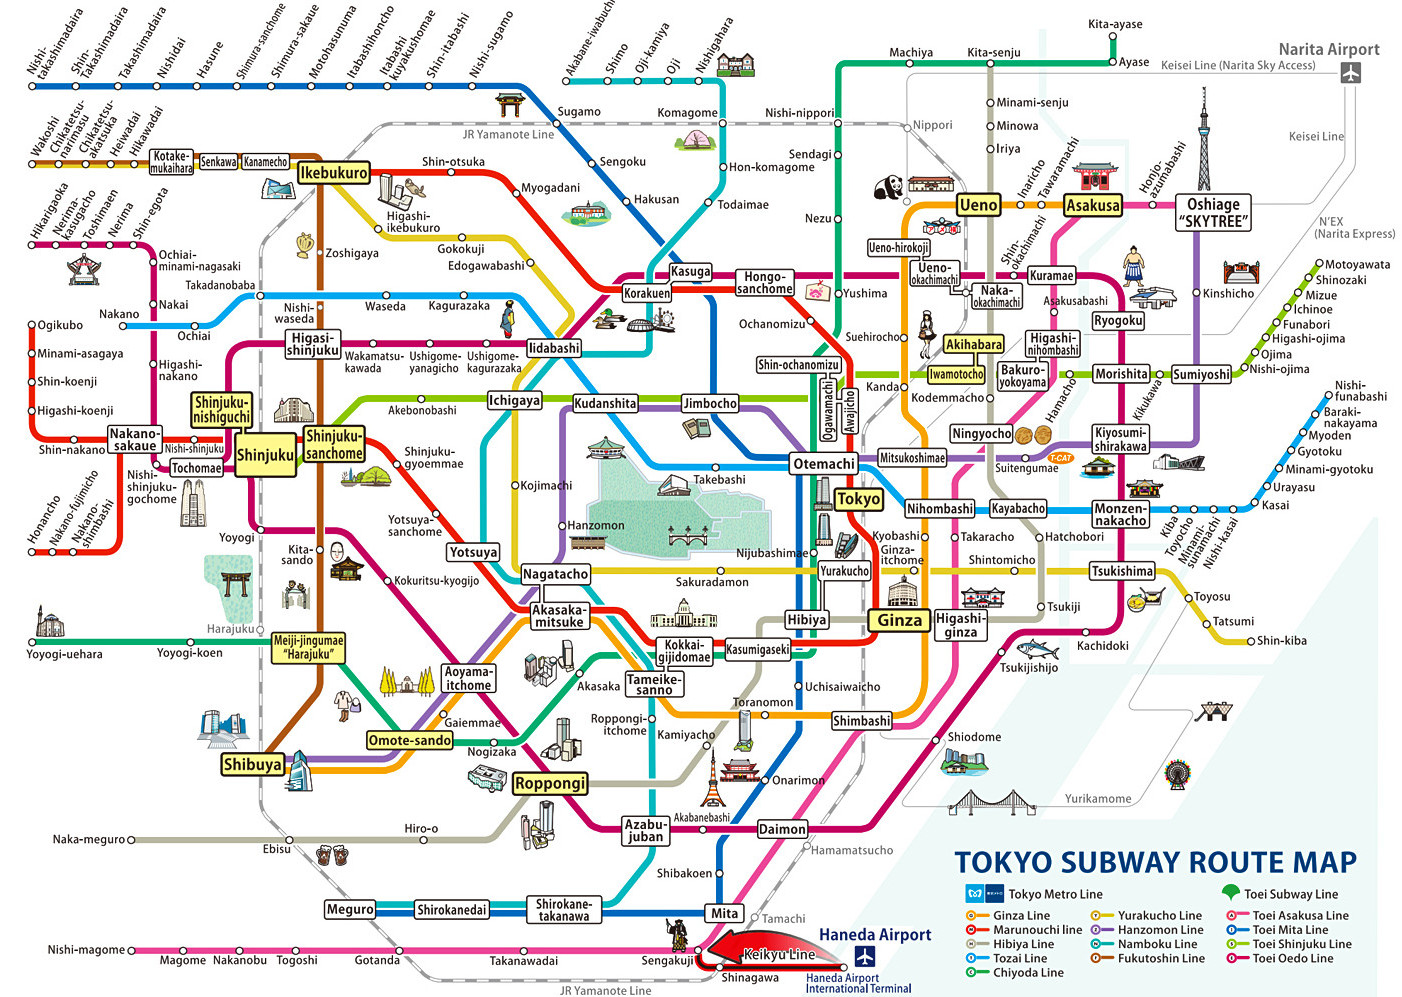 Subway Tokyo Map.Tokyo Subway Your Essential Guide To Tokyo S Public Transport Green And Turquoise